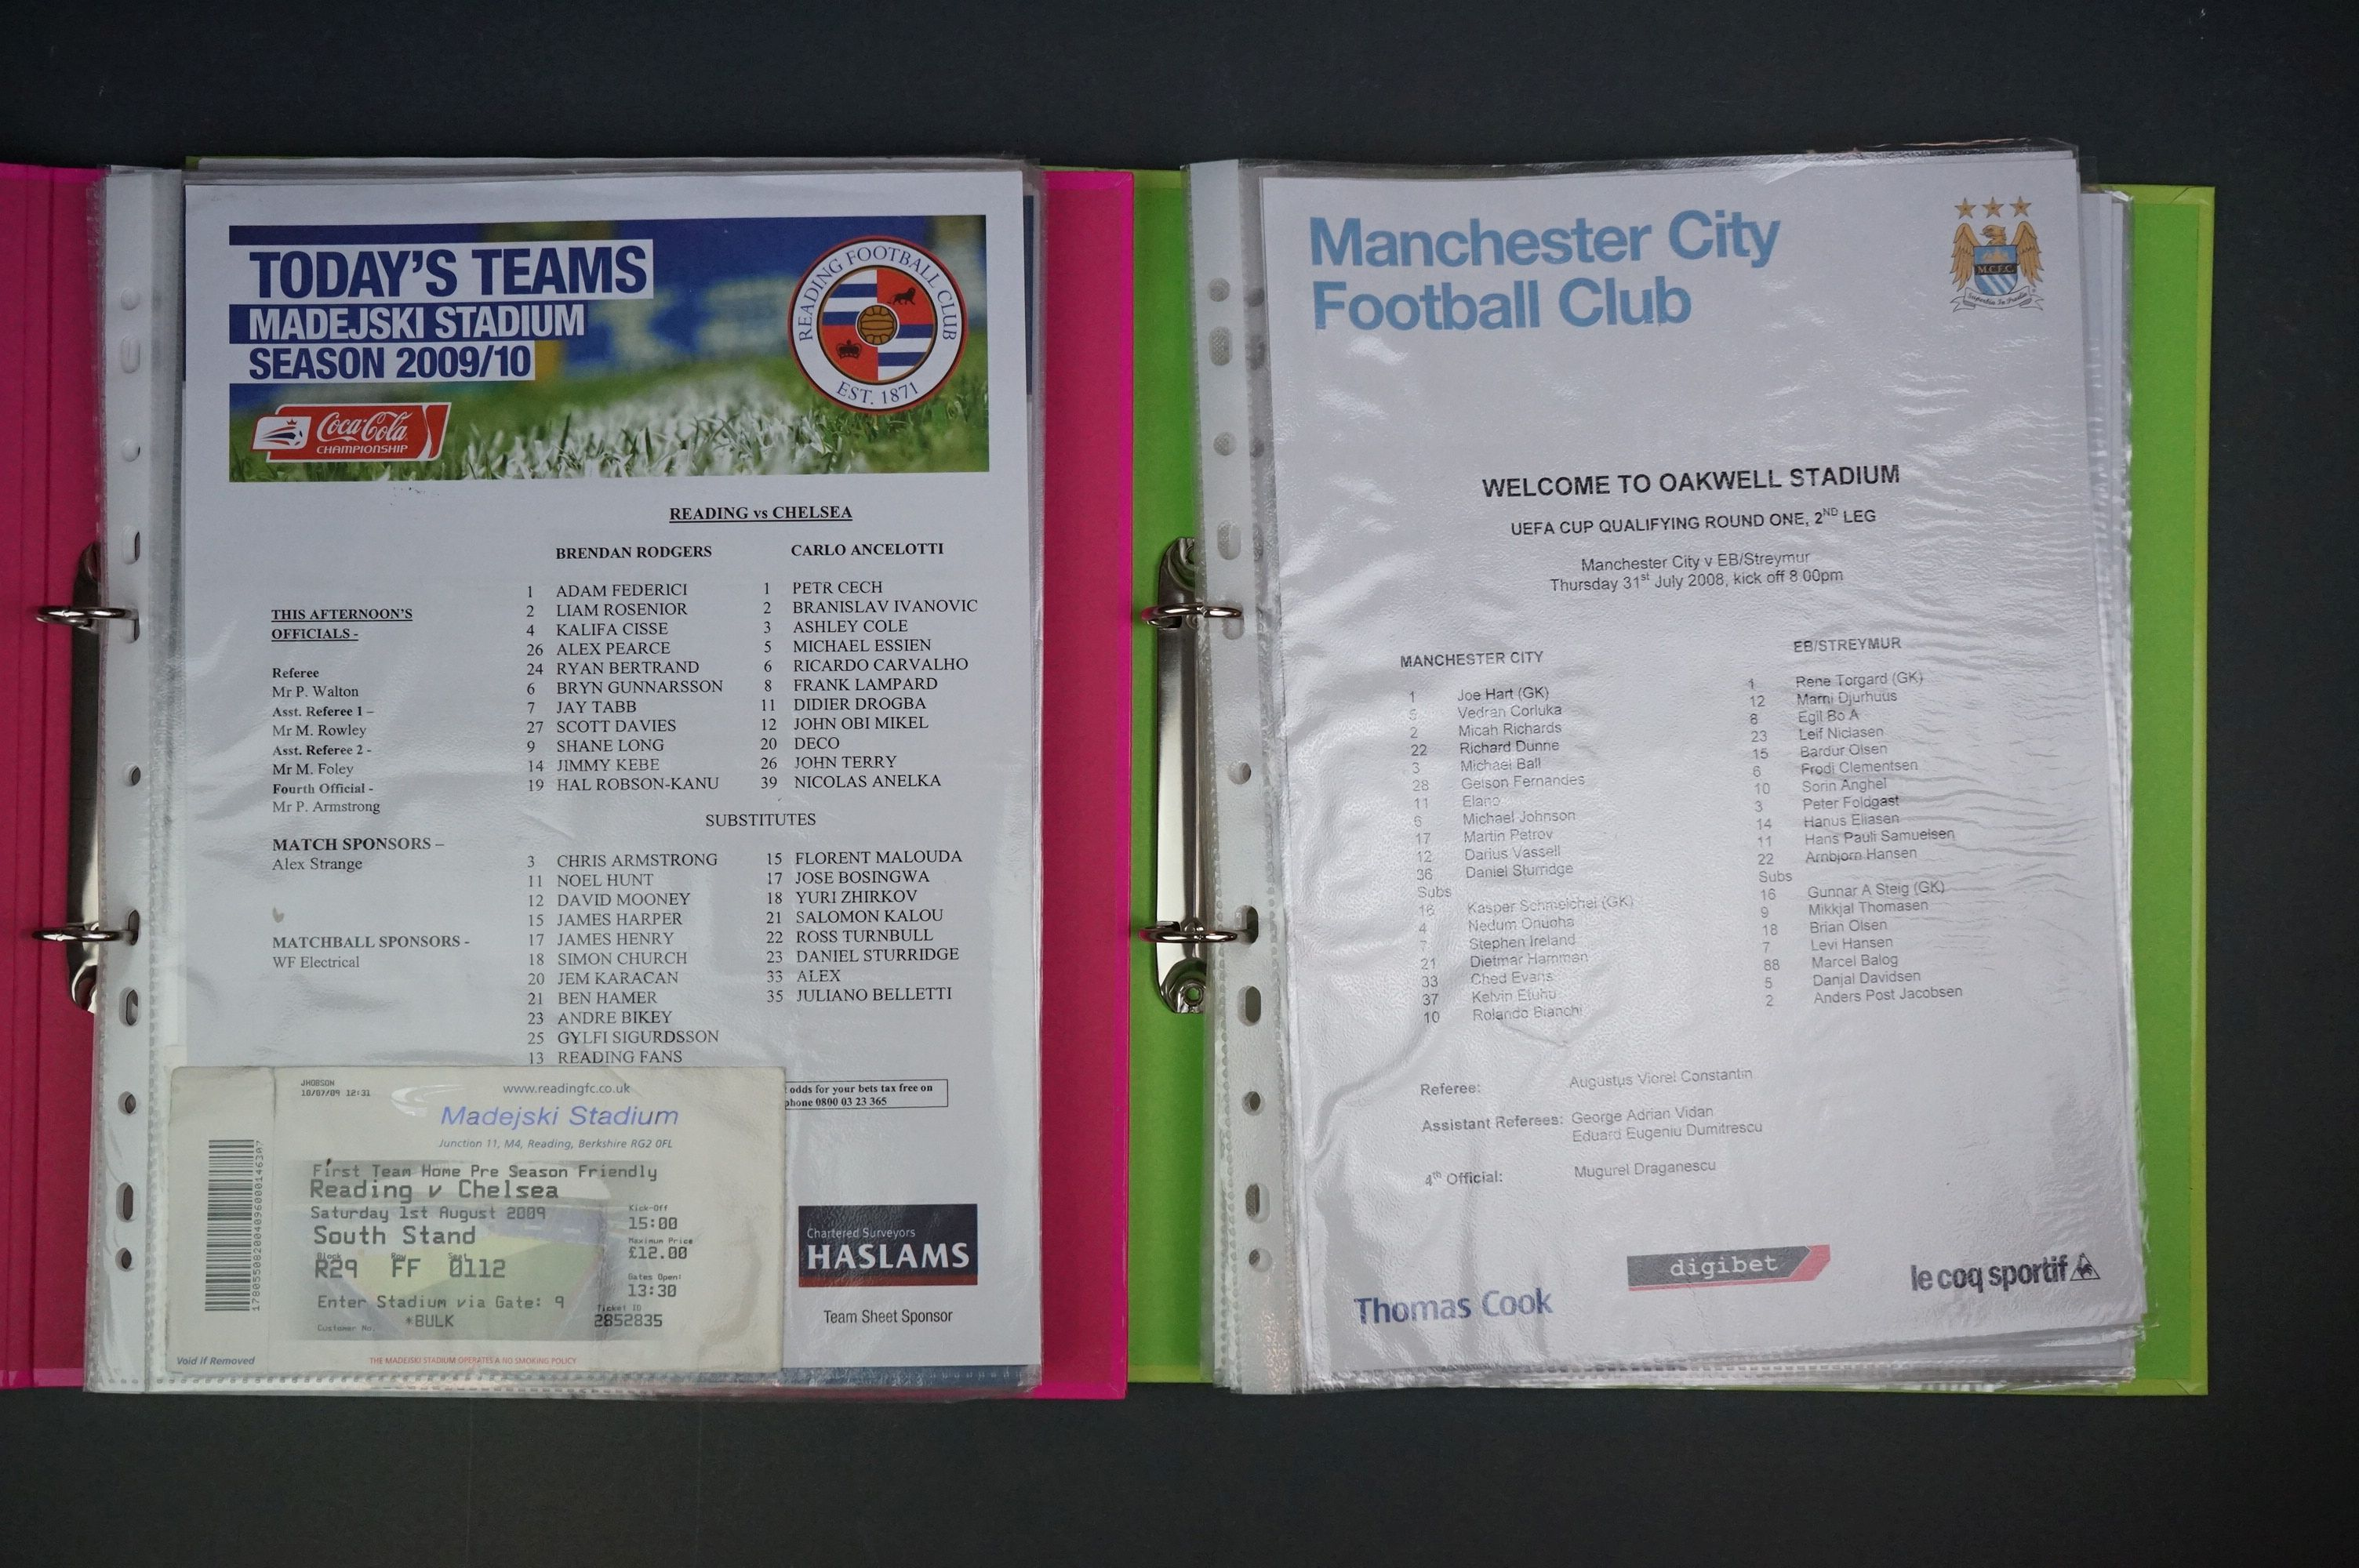 Football - Two binders containing a collection of home and away teamsheets, tickets etc for